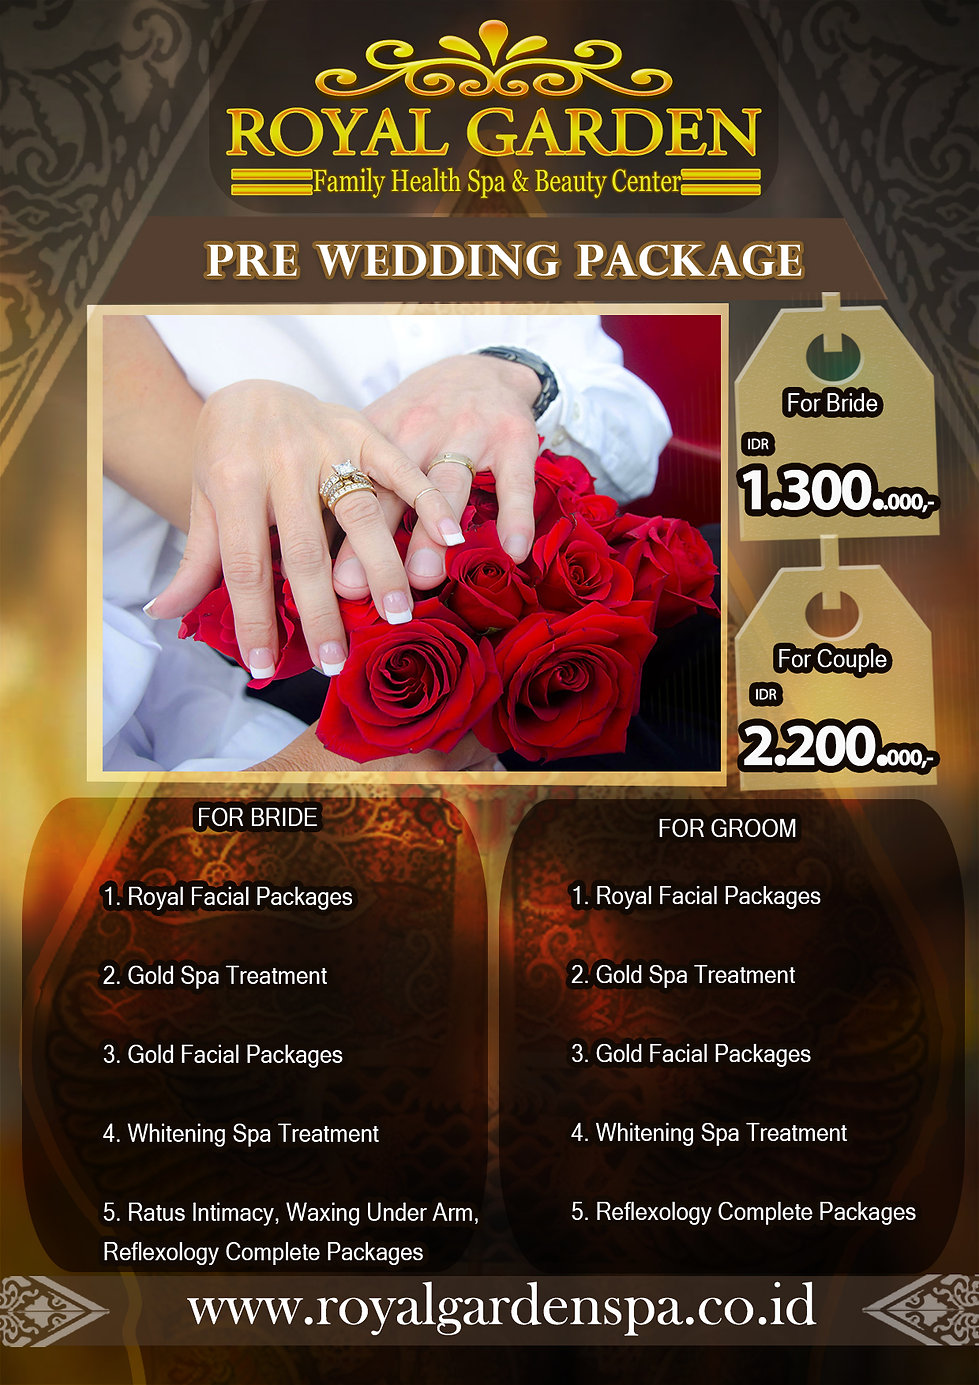 18 prewedding package.jpg